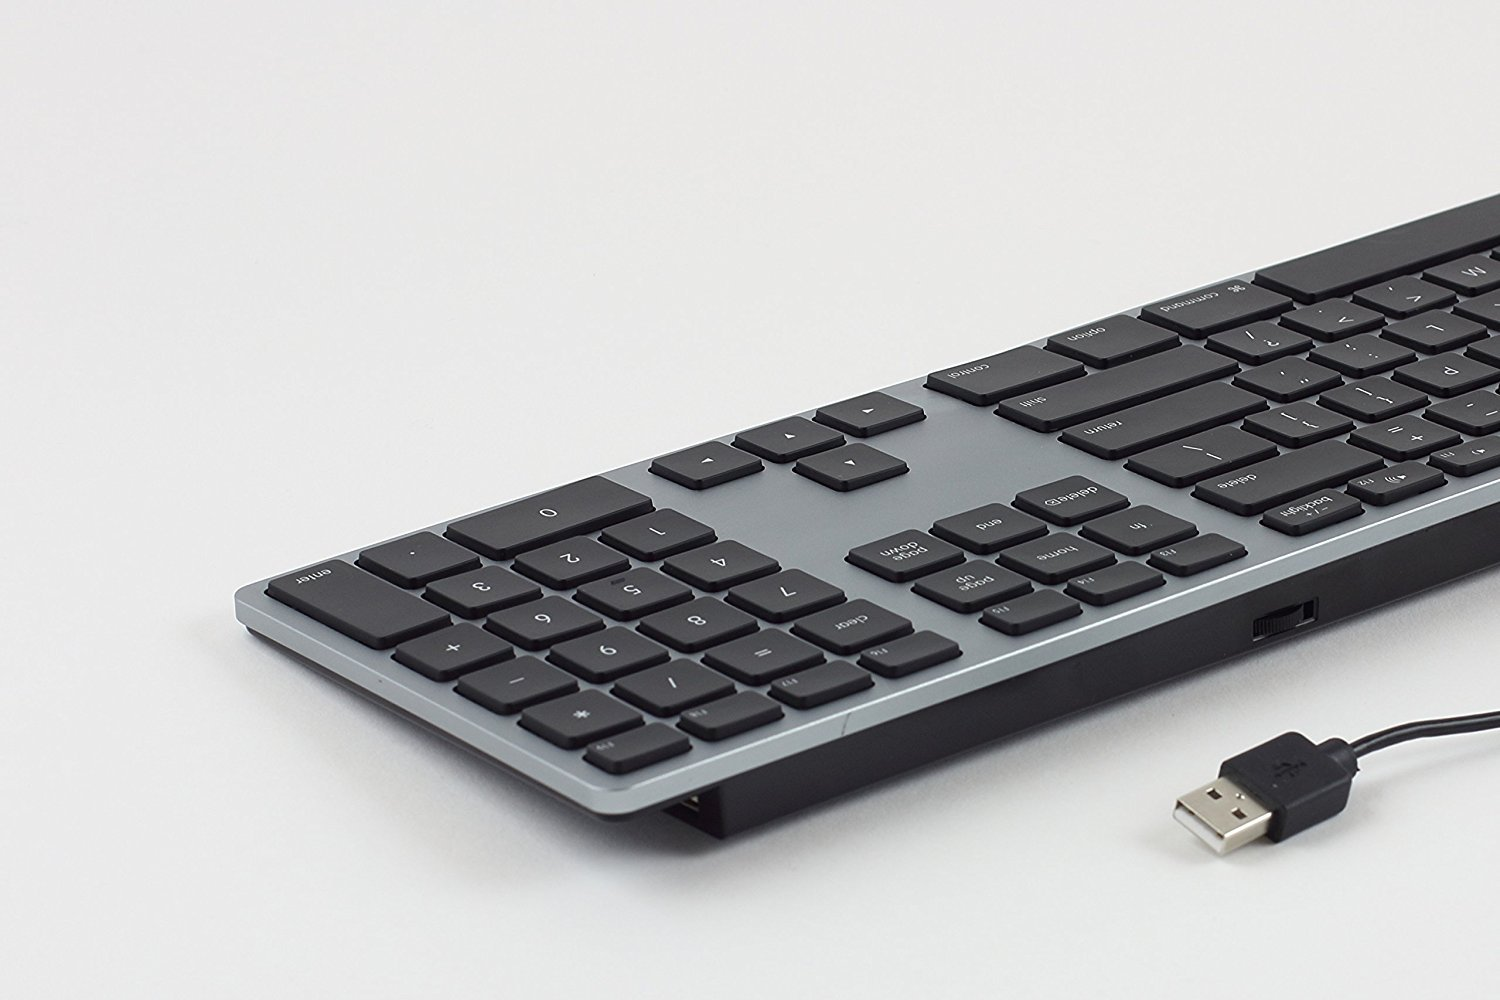 8d9fd262858 Matias RGB Backlit Tactical Wired Aluminum USB 2.0 Keyboard for Mac -  Adjustable Brightness and Rainbow Color Dial - Space Gray - Walmart.com